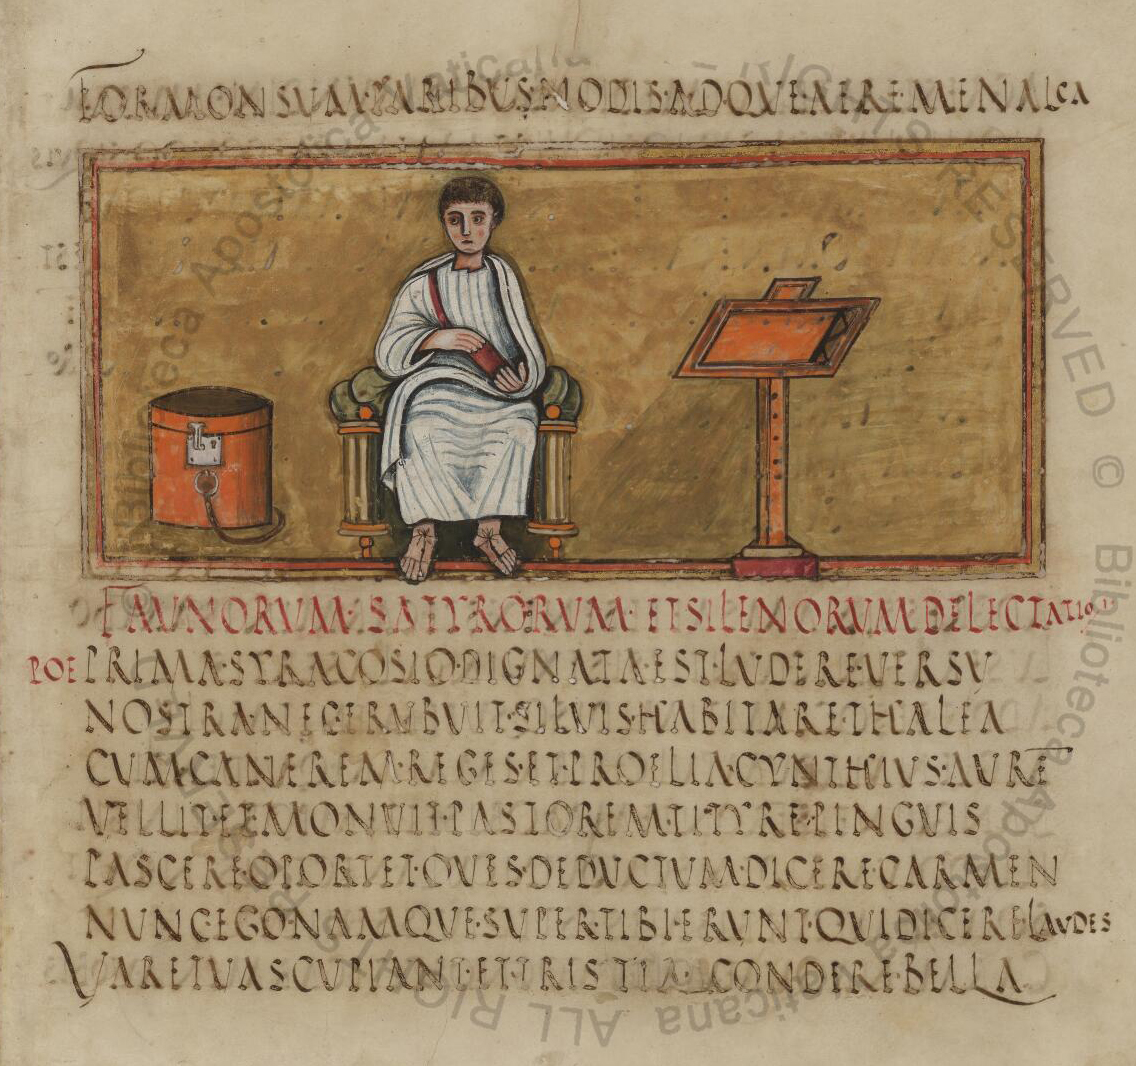 Folio 14 recto of the 5th century Vergilius Romanus contains an author portrait of Virgil. Note the bookcase (capsa), reading stand and the text written without word spacing in rustic capitals. - Wikipedia